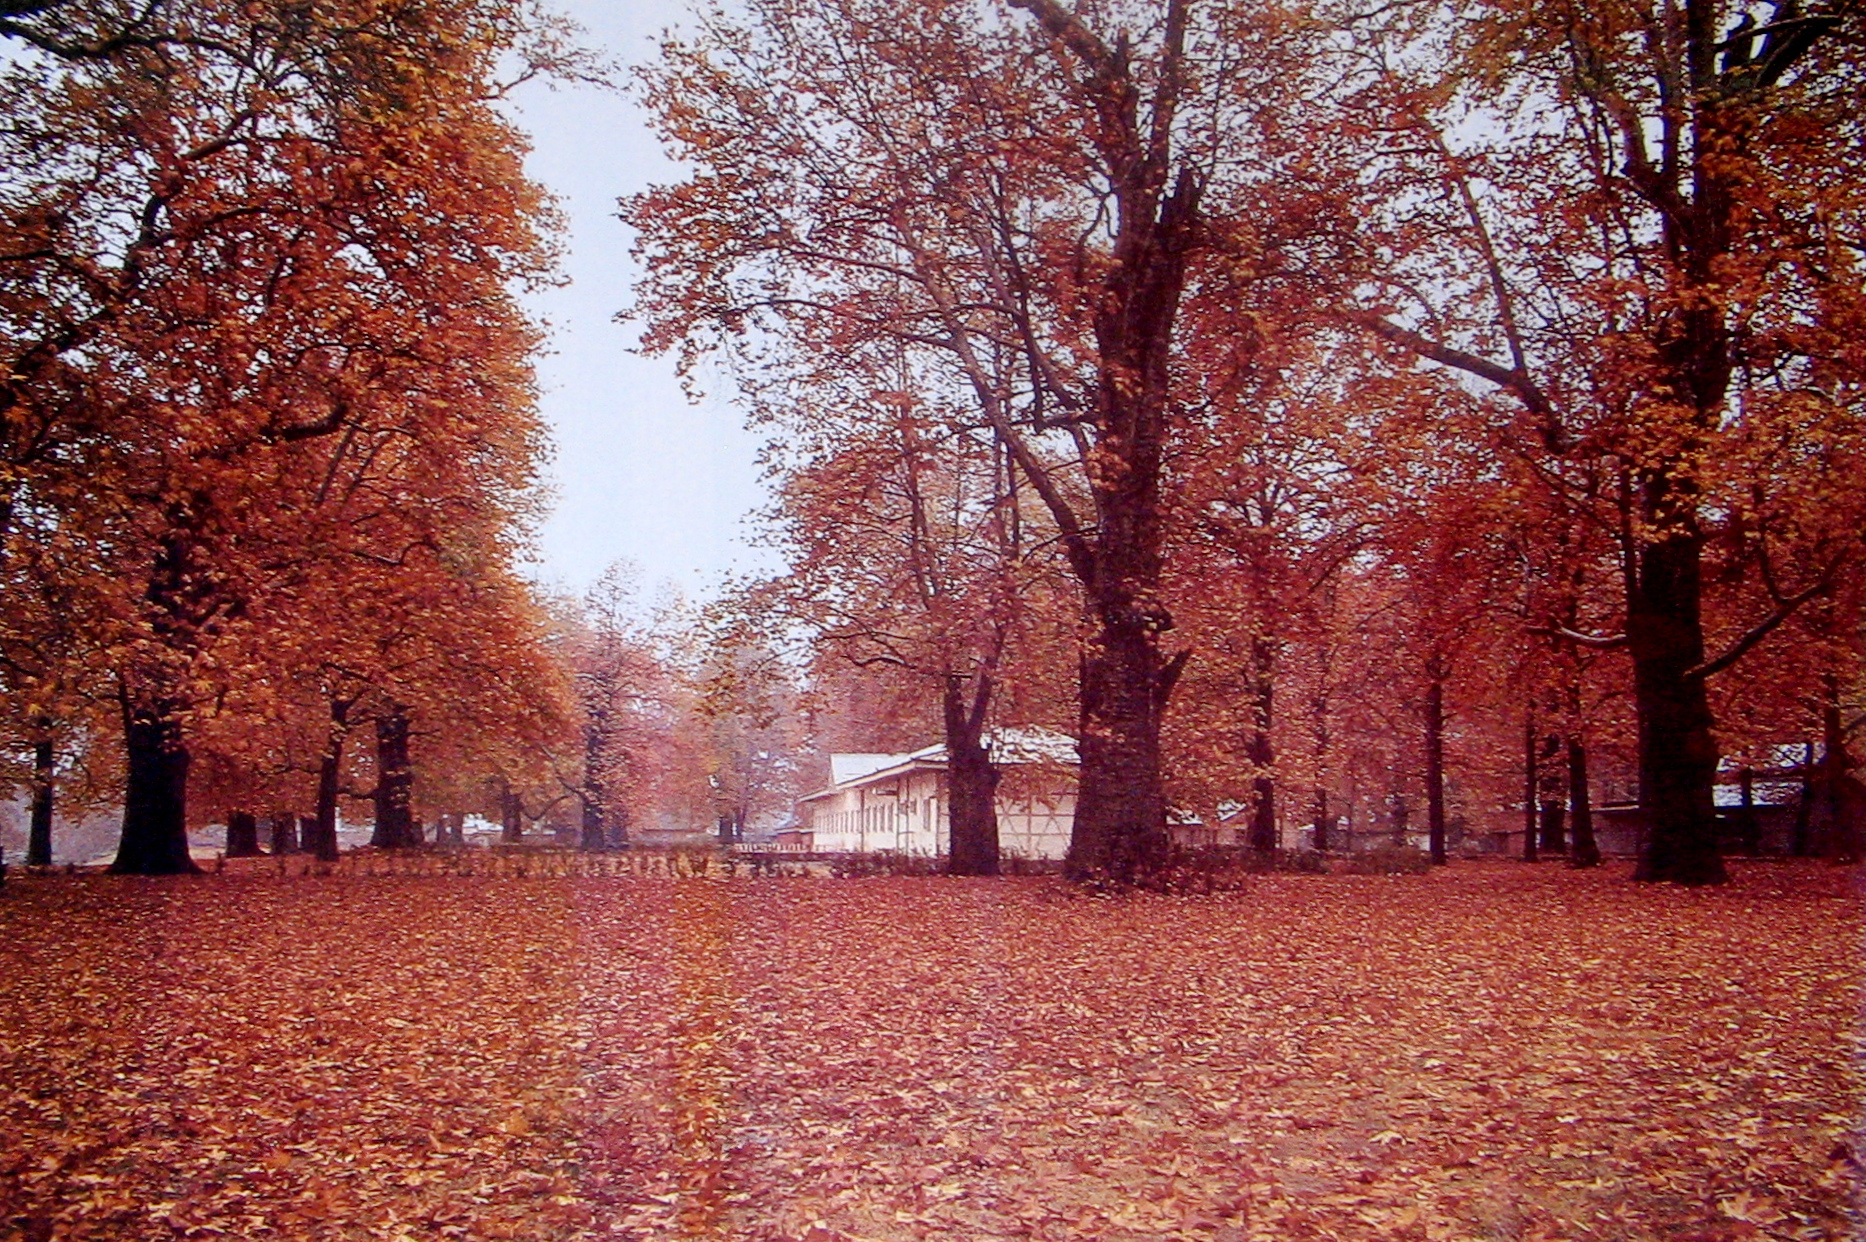 Chinar Trees in Autumn, Kashmir